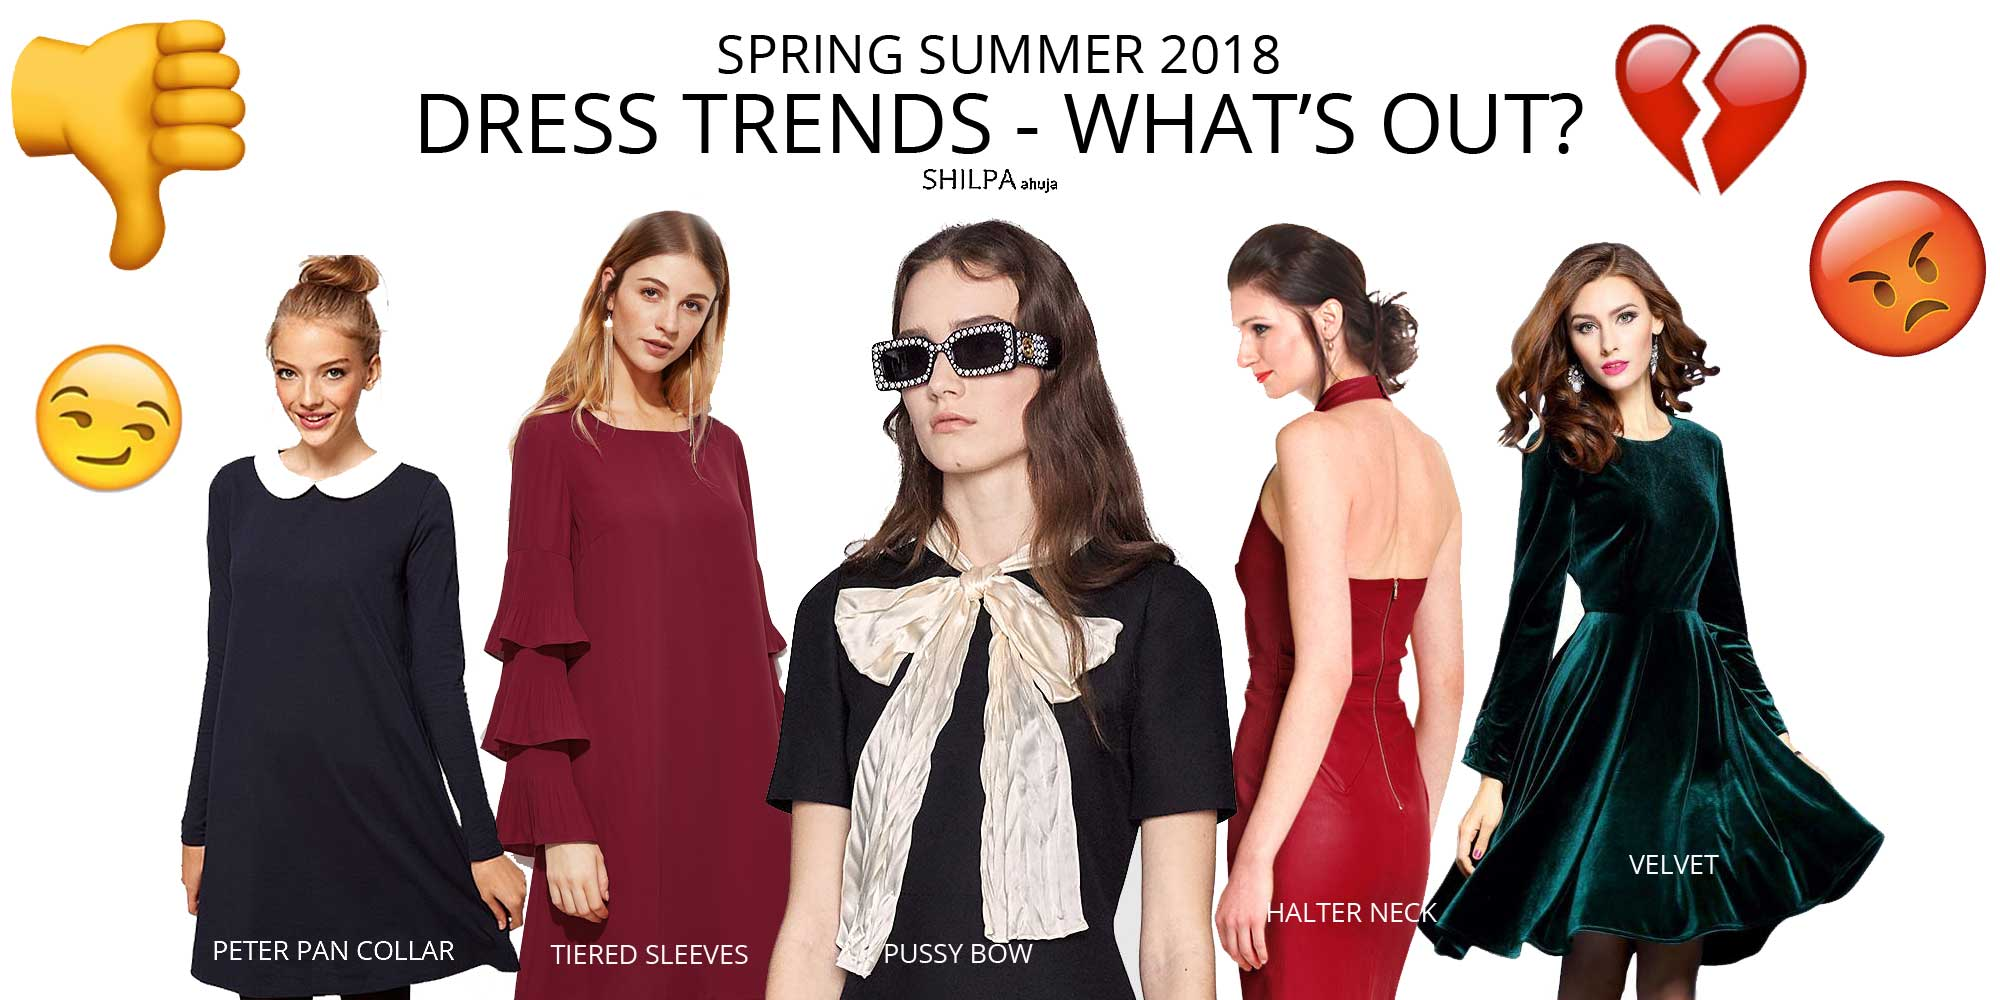 dress-trends-spring-summer-2018-ss18-out-of-fashion 2018 dress trends